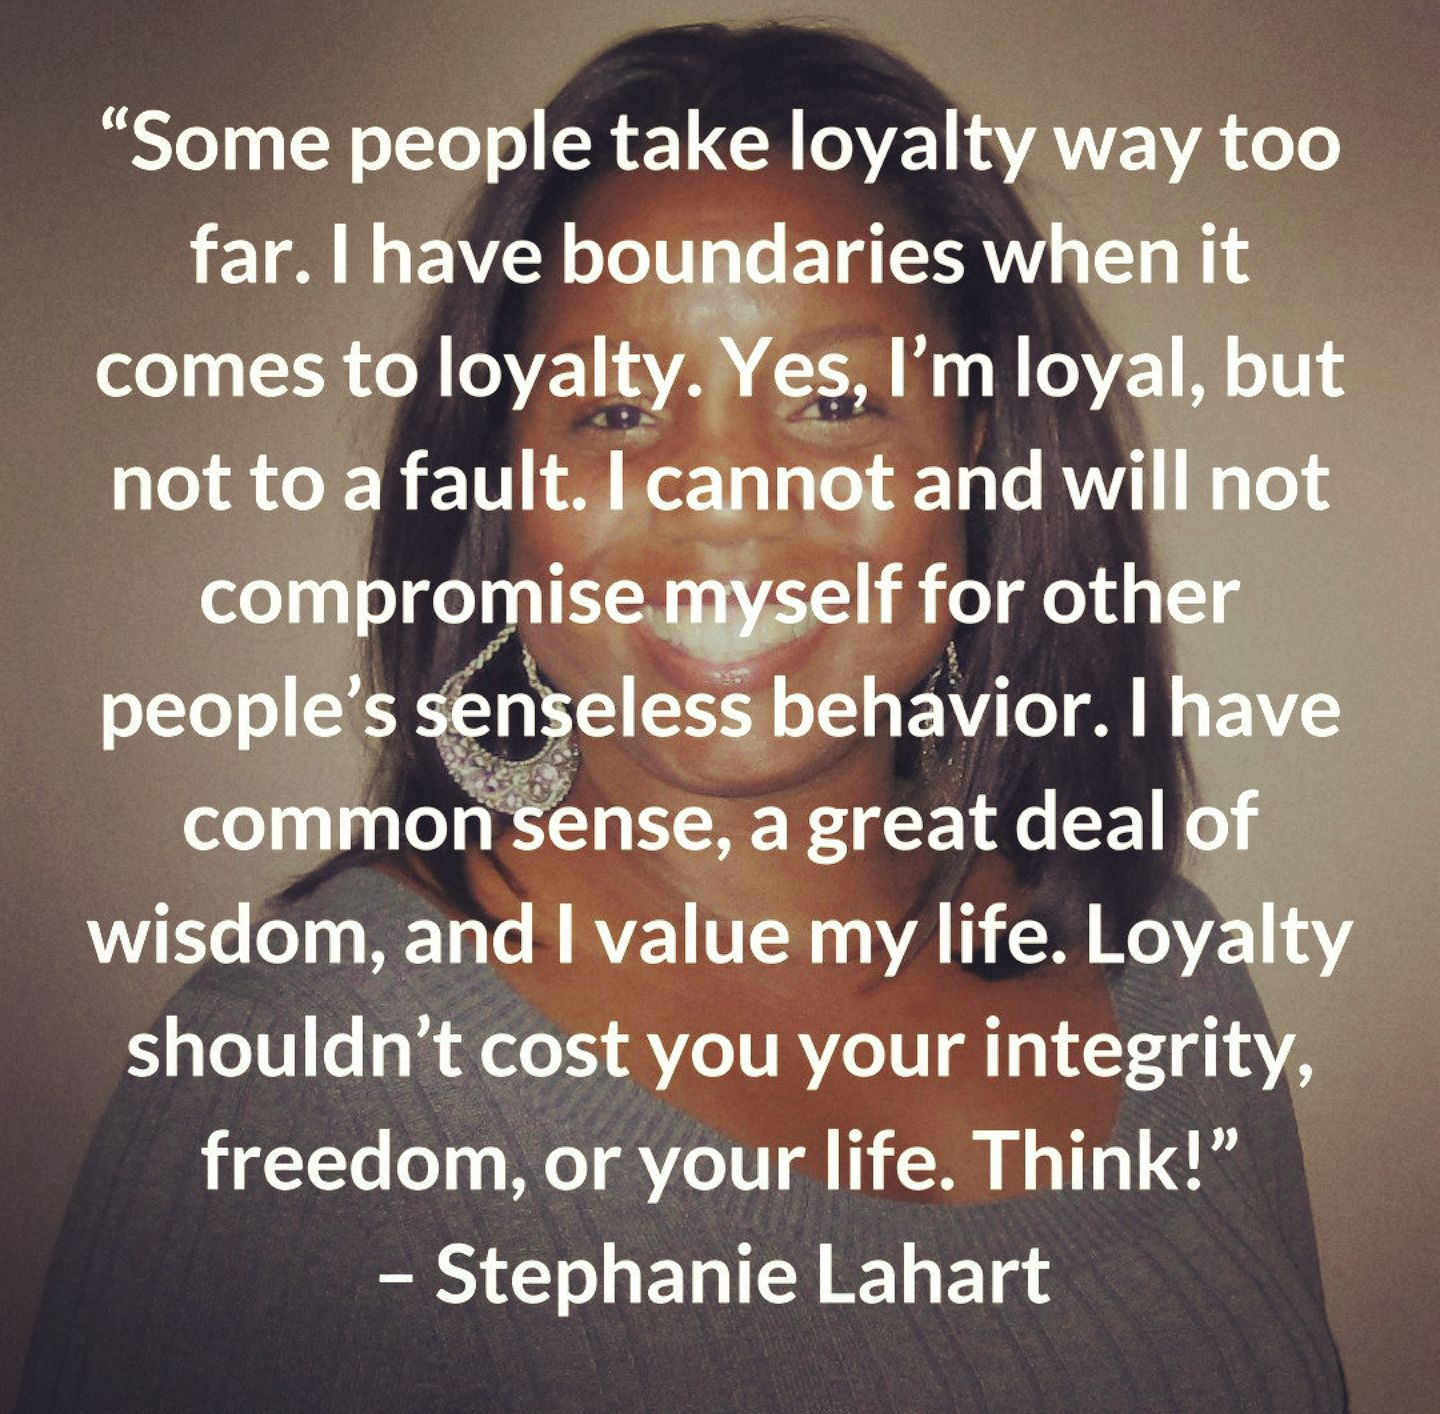 Words Of Wisdom Quotes Loyalty Quotesstephanie Lahart 2017Words Of Wisdom And Some